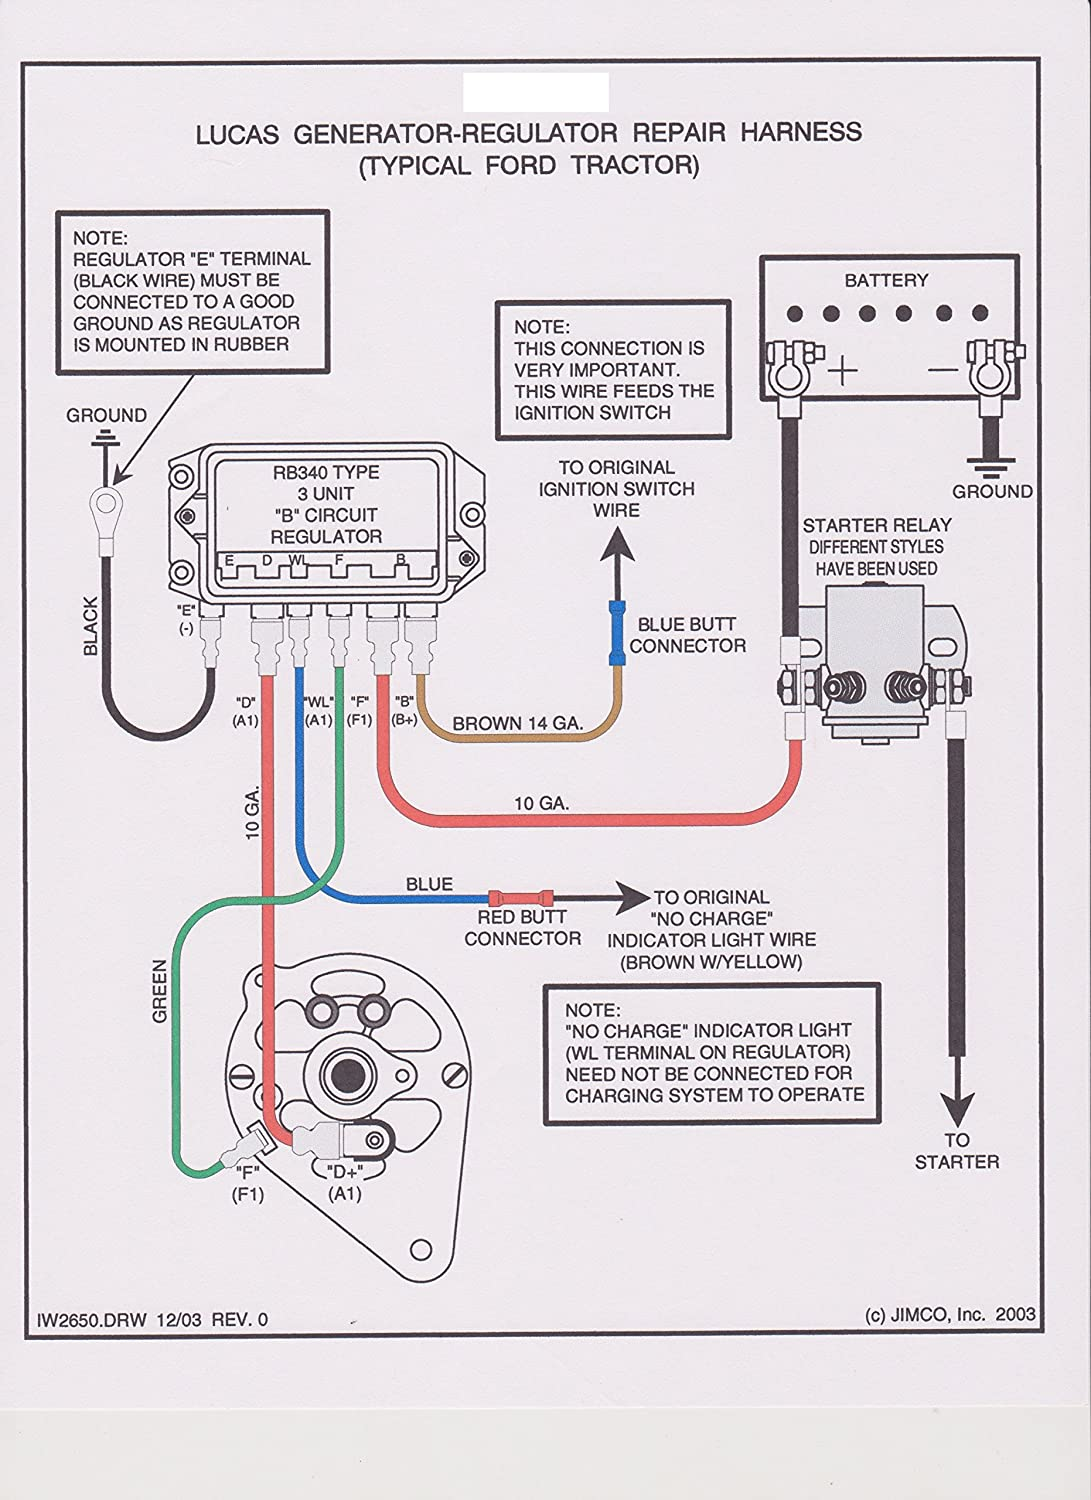 12 Volt Farmall Instrument Panel Wiring Diagram Wiring